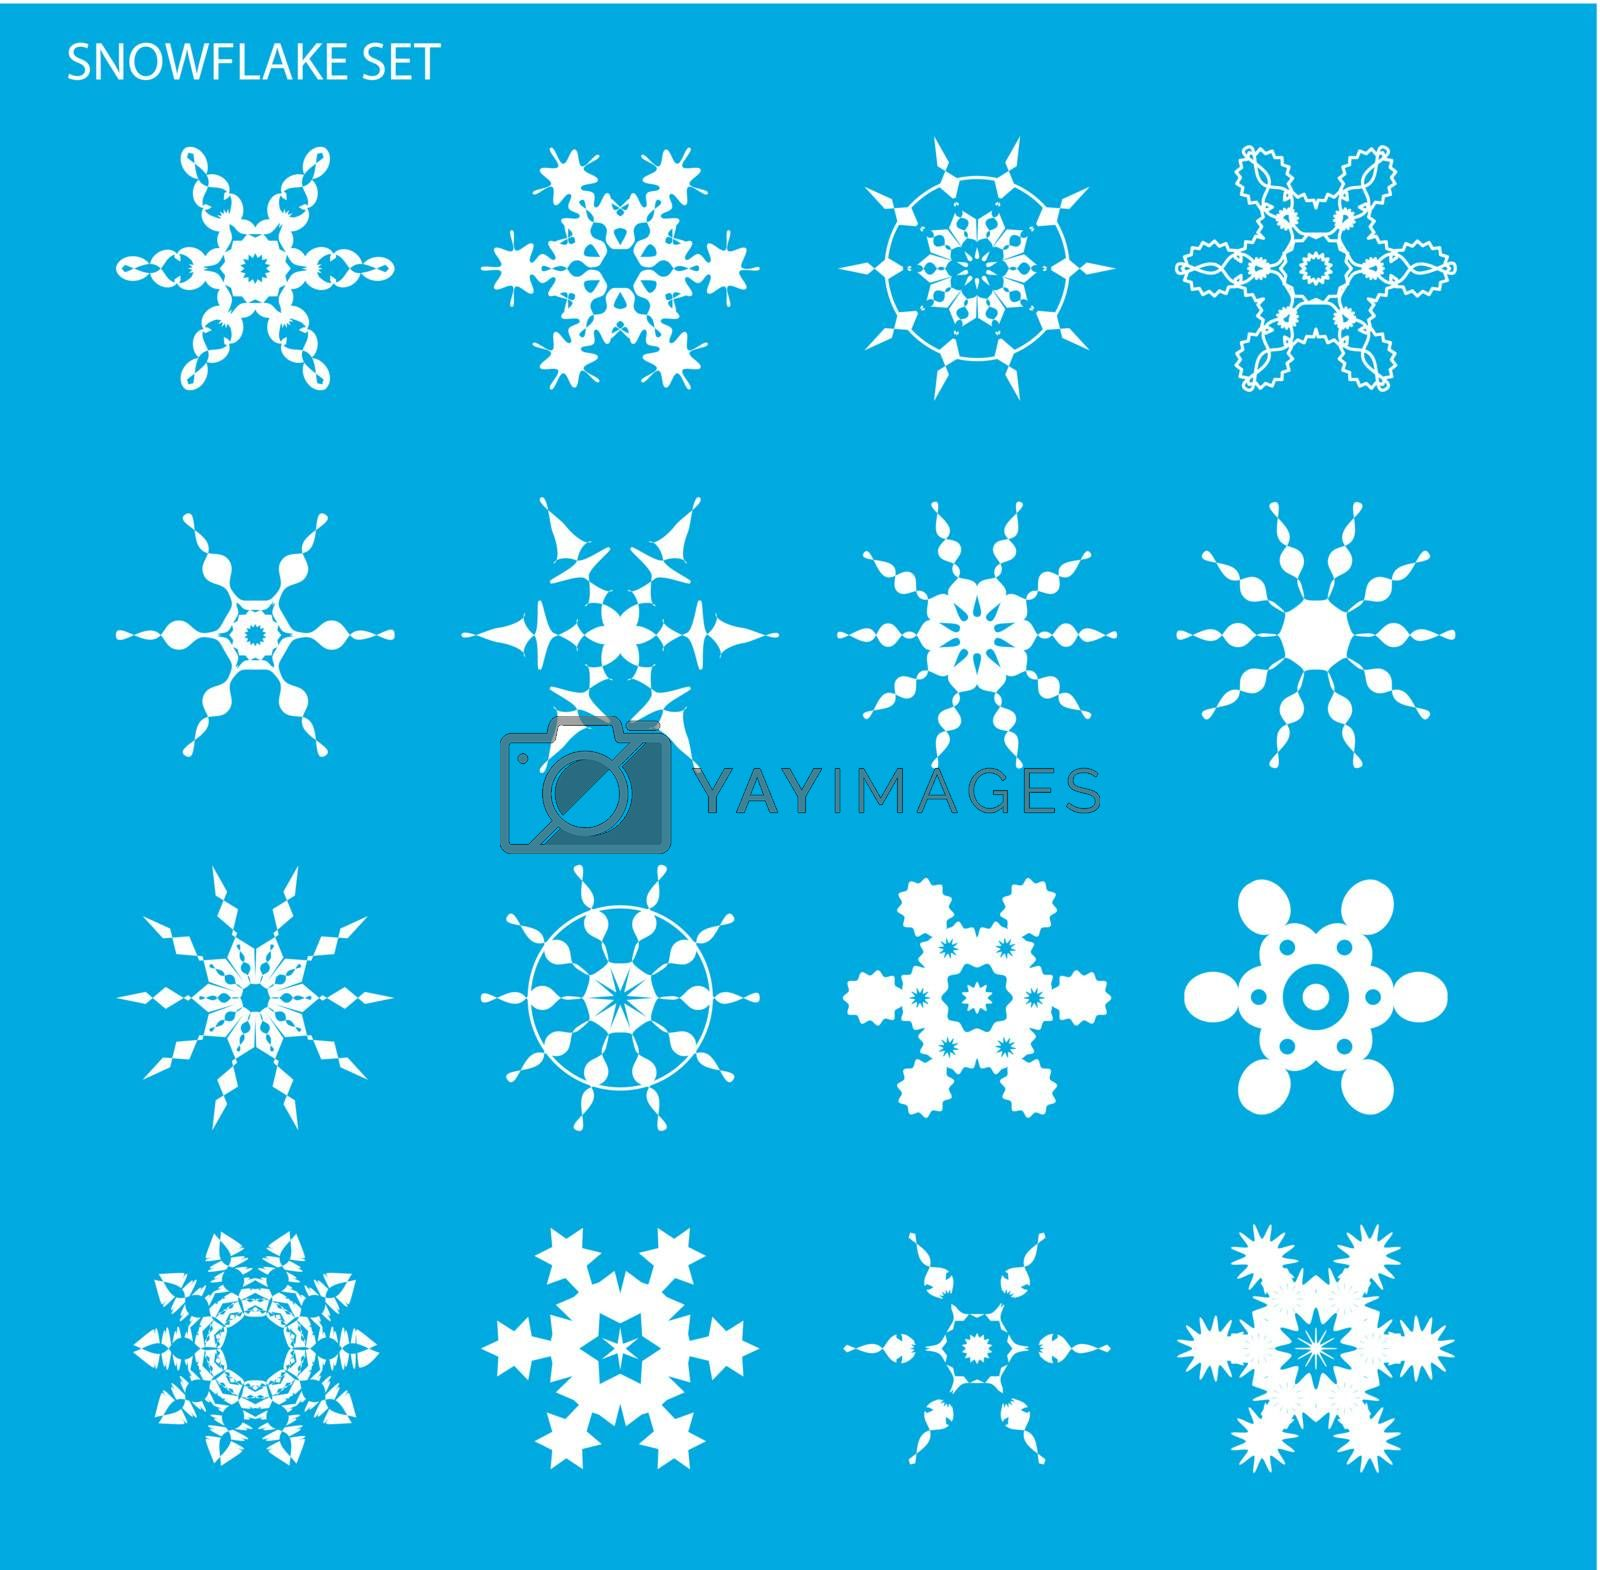 Set with snowflakes on blue background for design